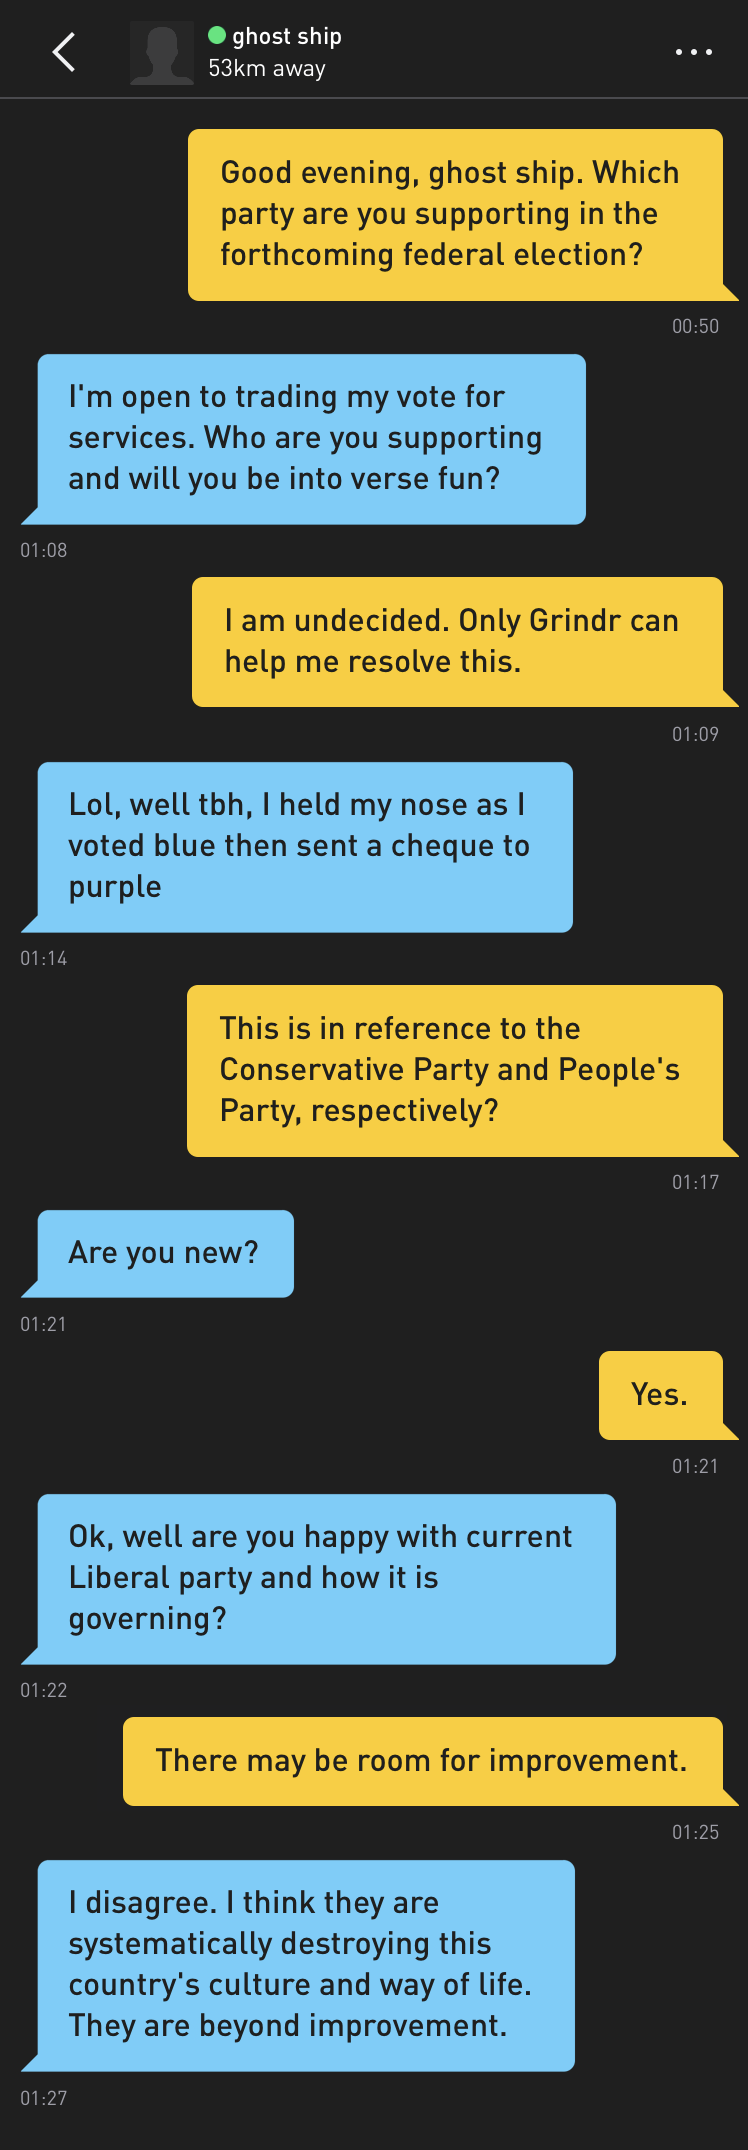 Me: Good evening, ghost ship. Which party are you supporting in the forthcoming federal election? ghost ship: I'm open to trading my vote for services. Who are you supporting and will you be into verse fun? Me: I am undecided. Only Grindr can help me resolve this. ghost ship: Lol, well tbh, I held my nose as I voted blue then sent a cheque to purple Me: This is in reference to the Conservative Party and People's Party, respectively? ghost ship: Are you new? Me: Yes. ghost ship: Ok, well are you happy with current Liberal party and how it is governing? Me: There may be room for improvement. ghost ship: I disagree. I think they are systematically destroying this country's culture and way of life. They are beyond improvement.